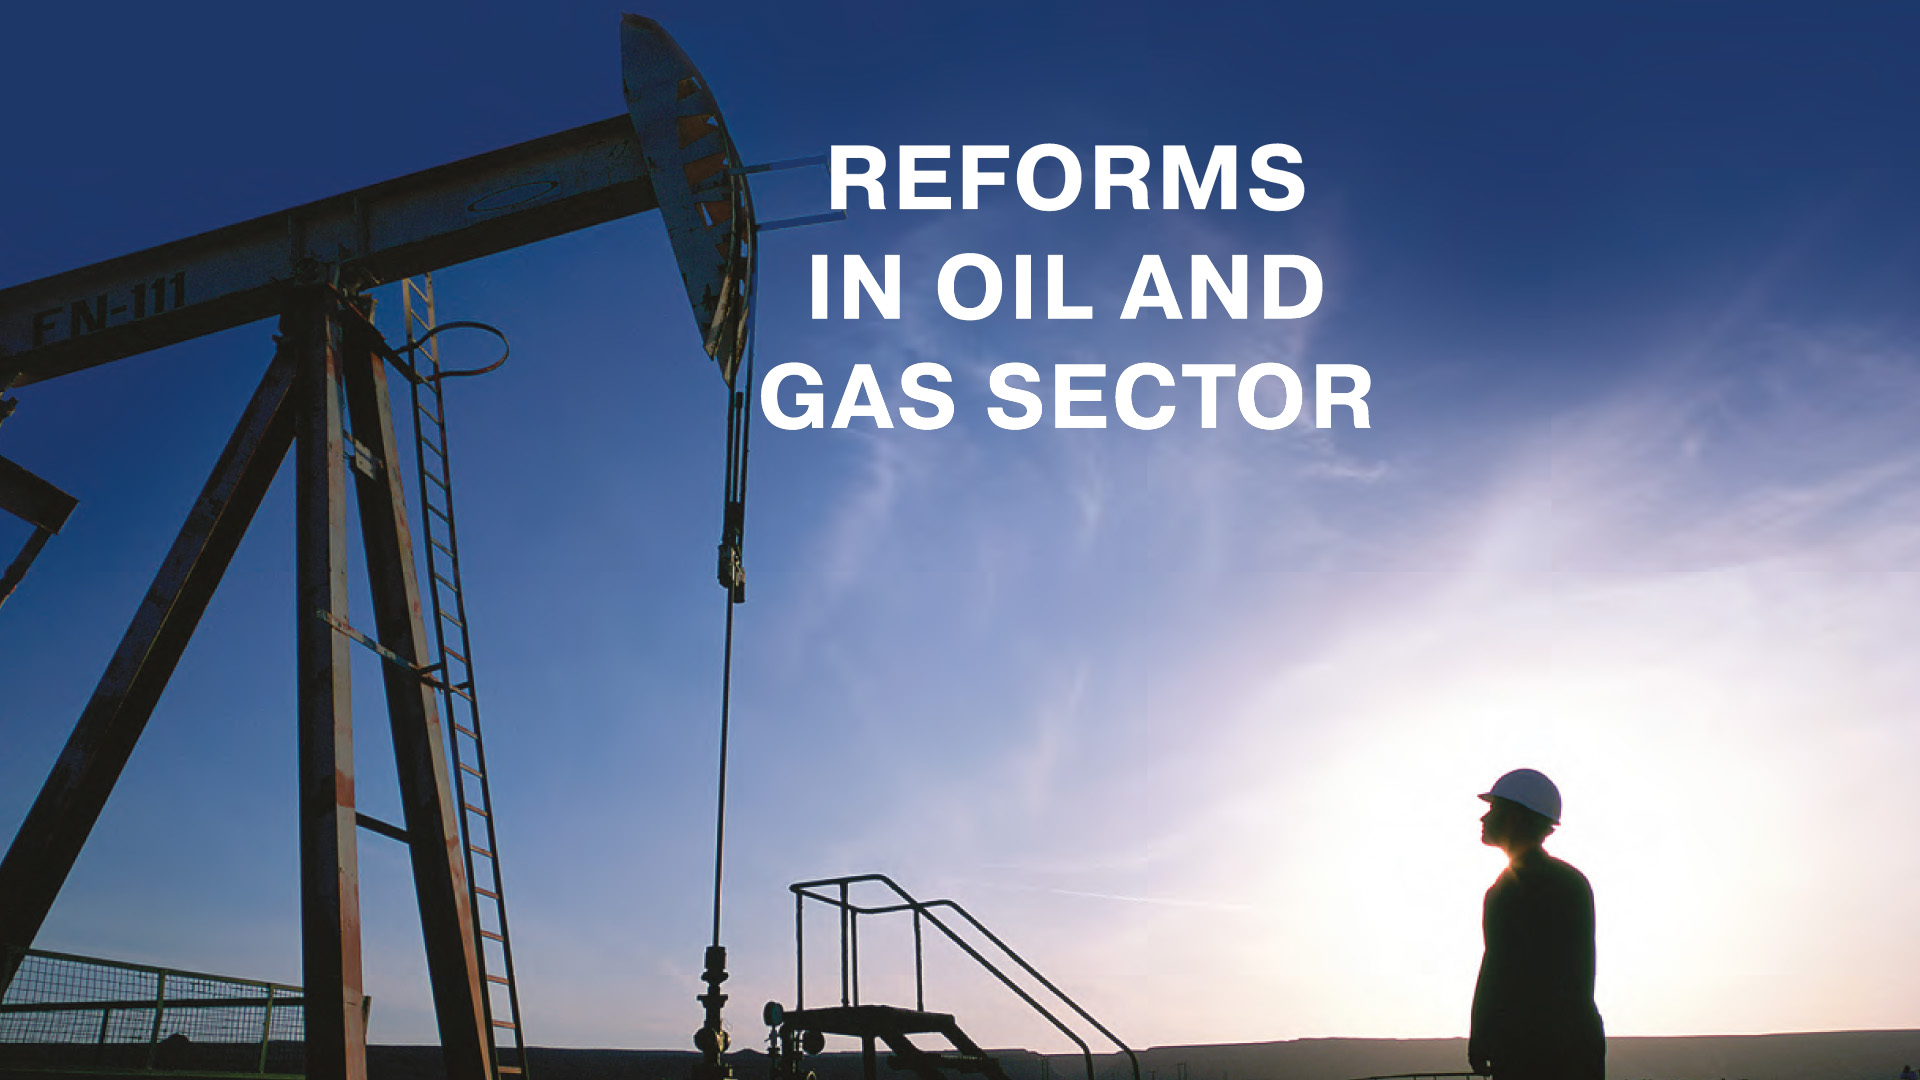 Chamber White Paper on Reforms in the Oil & Gas Sector (2014-2015)